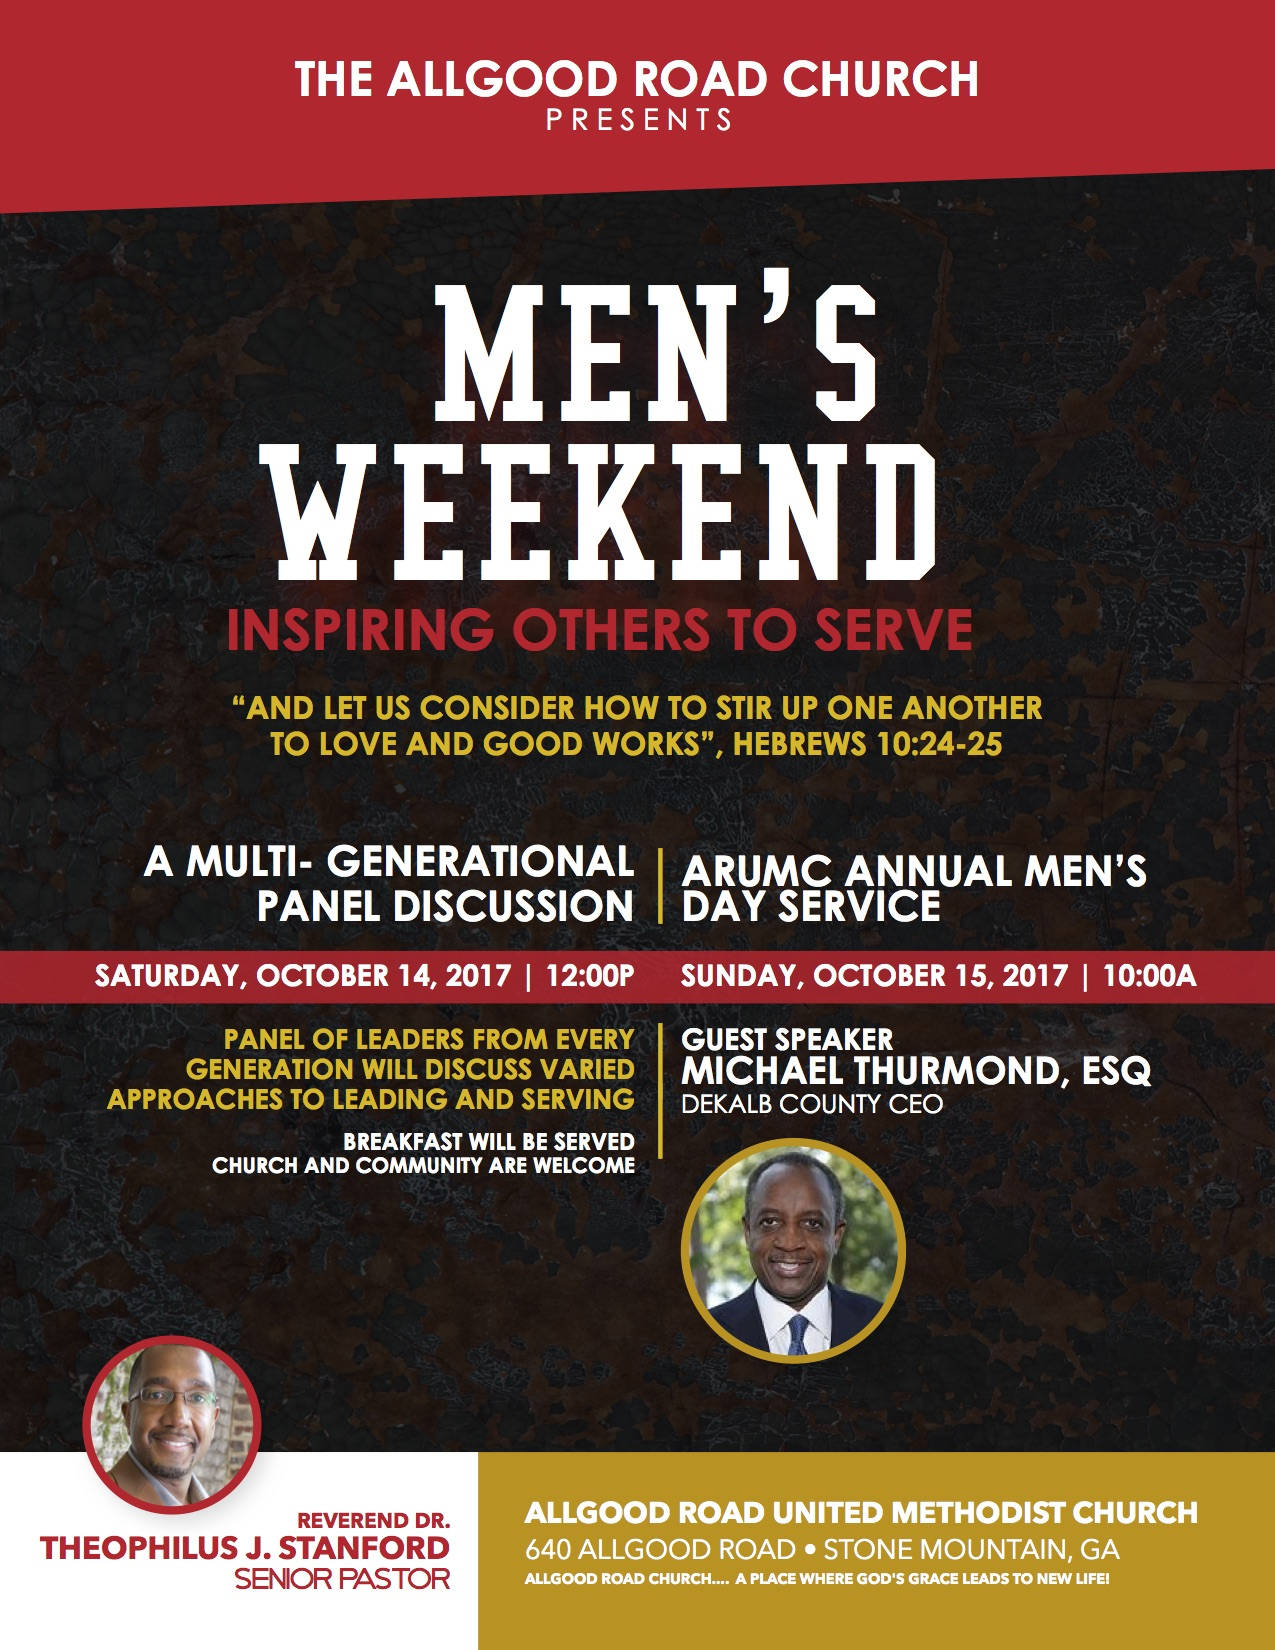 The Allgood Road Church Men's Weekend 2017